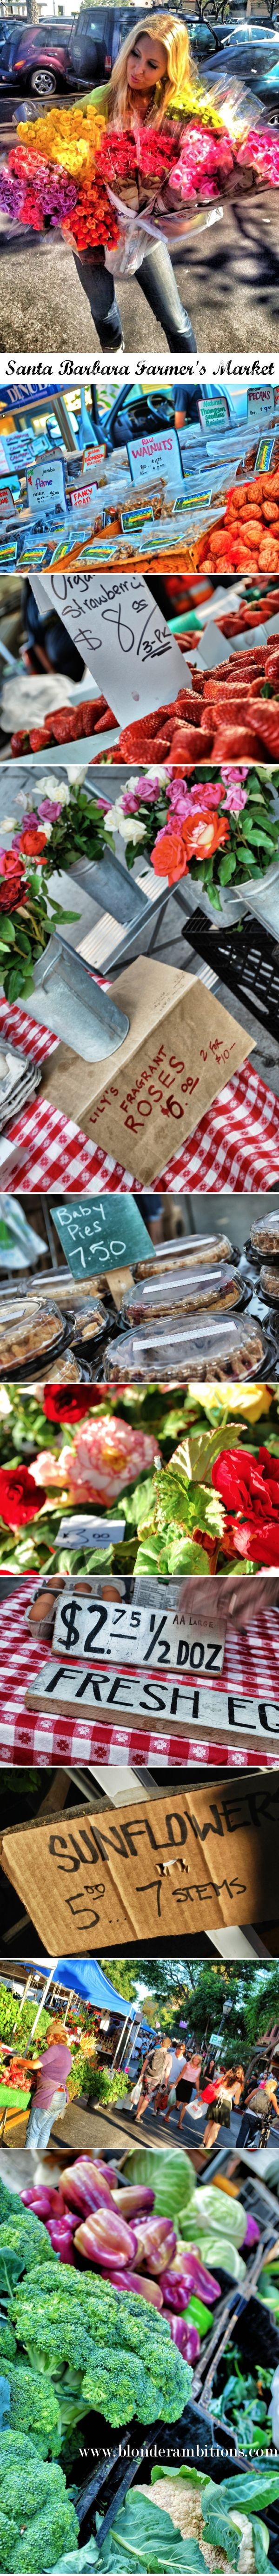 Best Public Markets Images On Pinterest Public Farmers - The 10 freshest farmers markets in canada